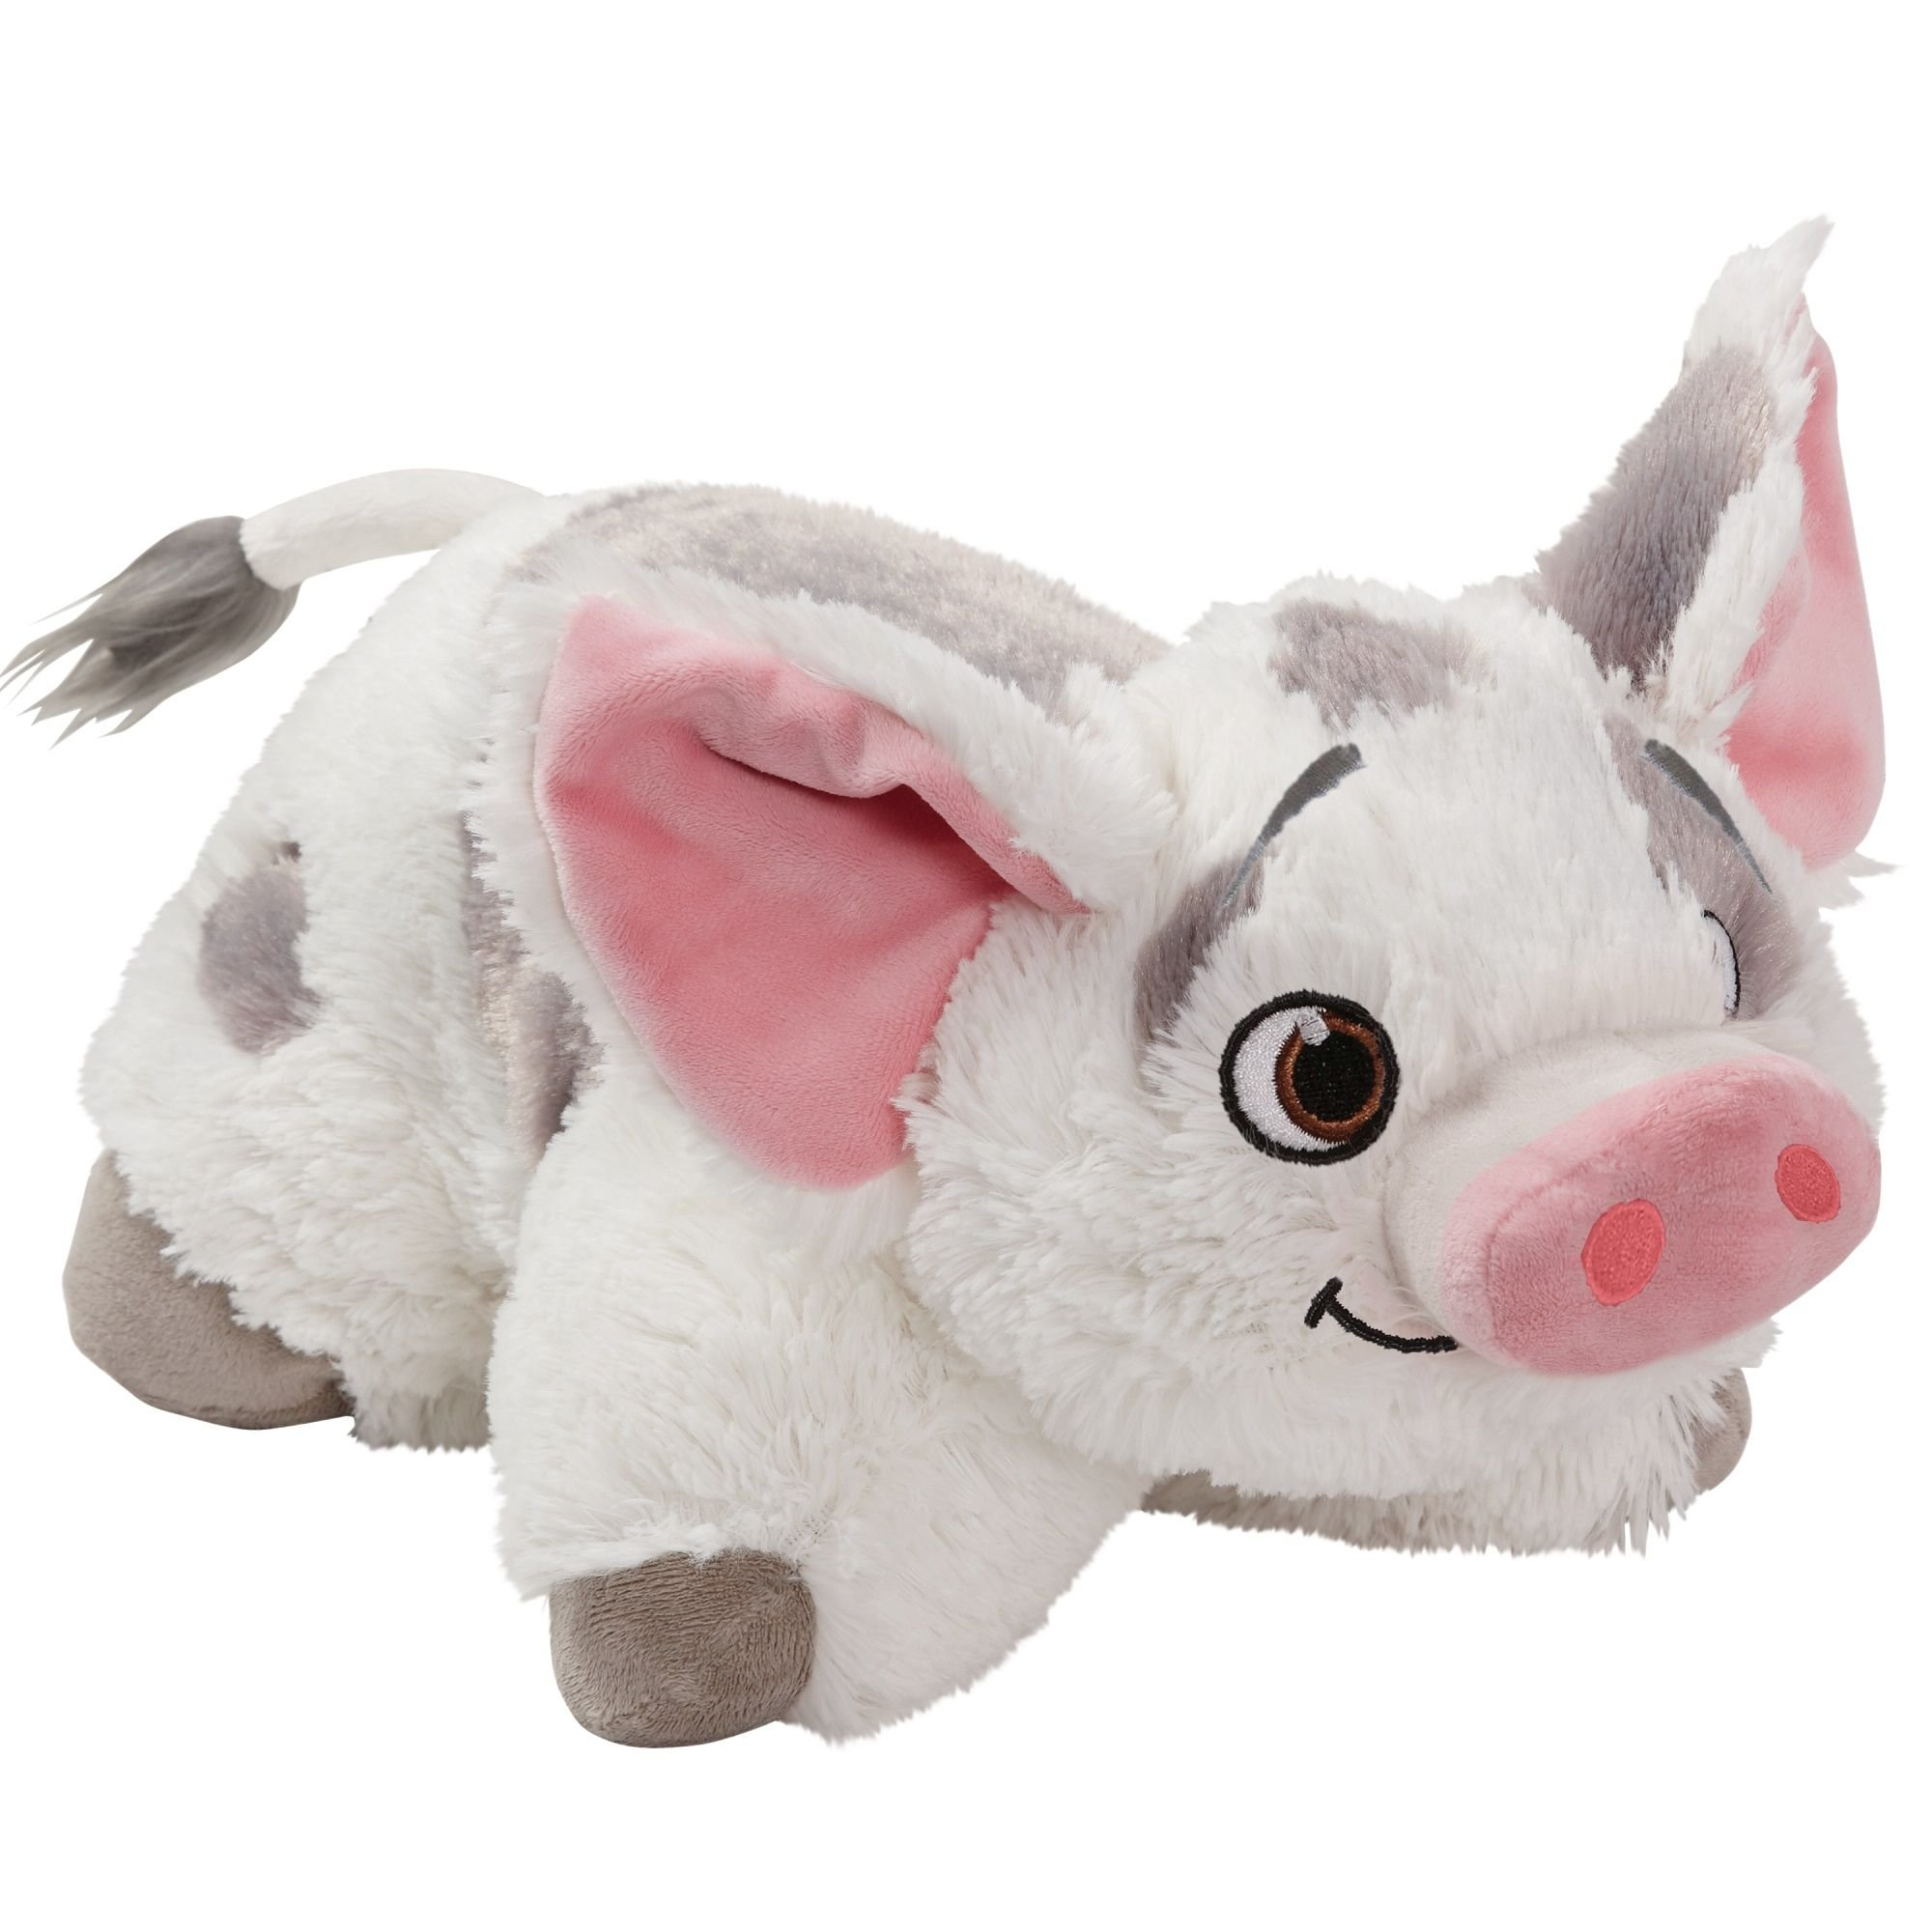 Pillow Pets DCP-NS-PUA Disney Moana Stuffed Animal Plush Toy, 16'', White by Pillow Pets